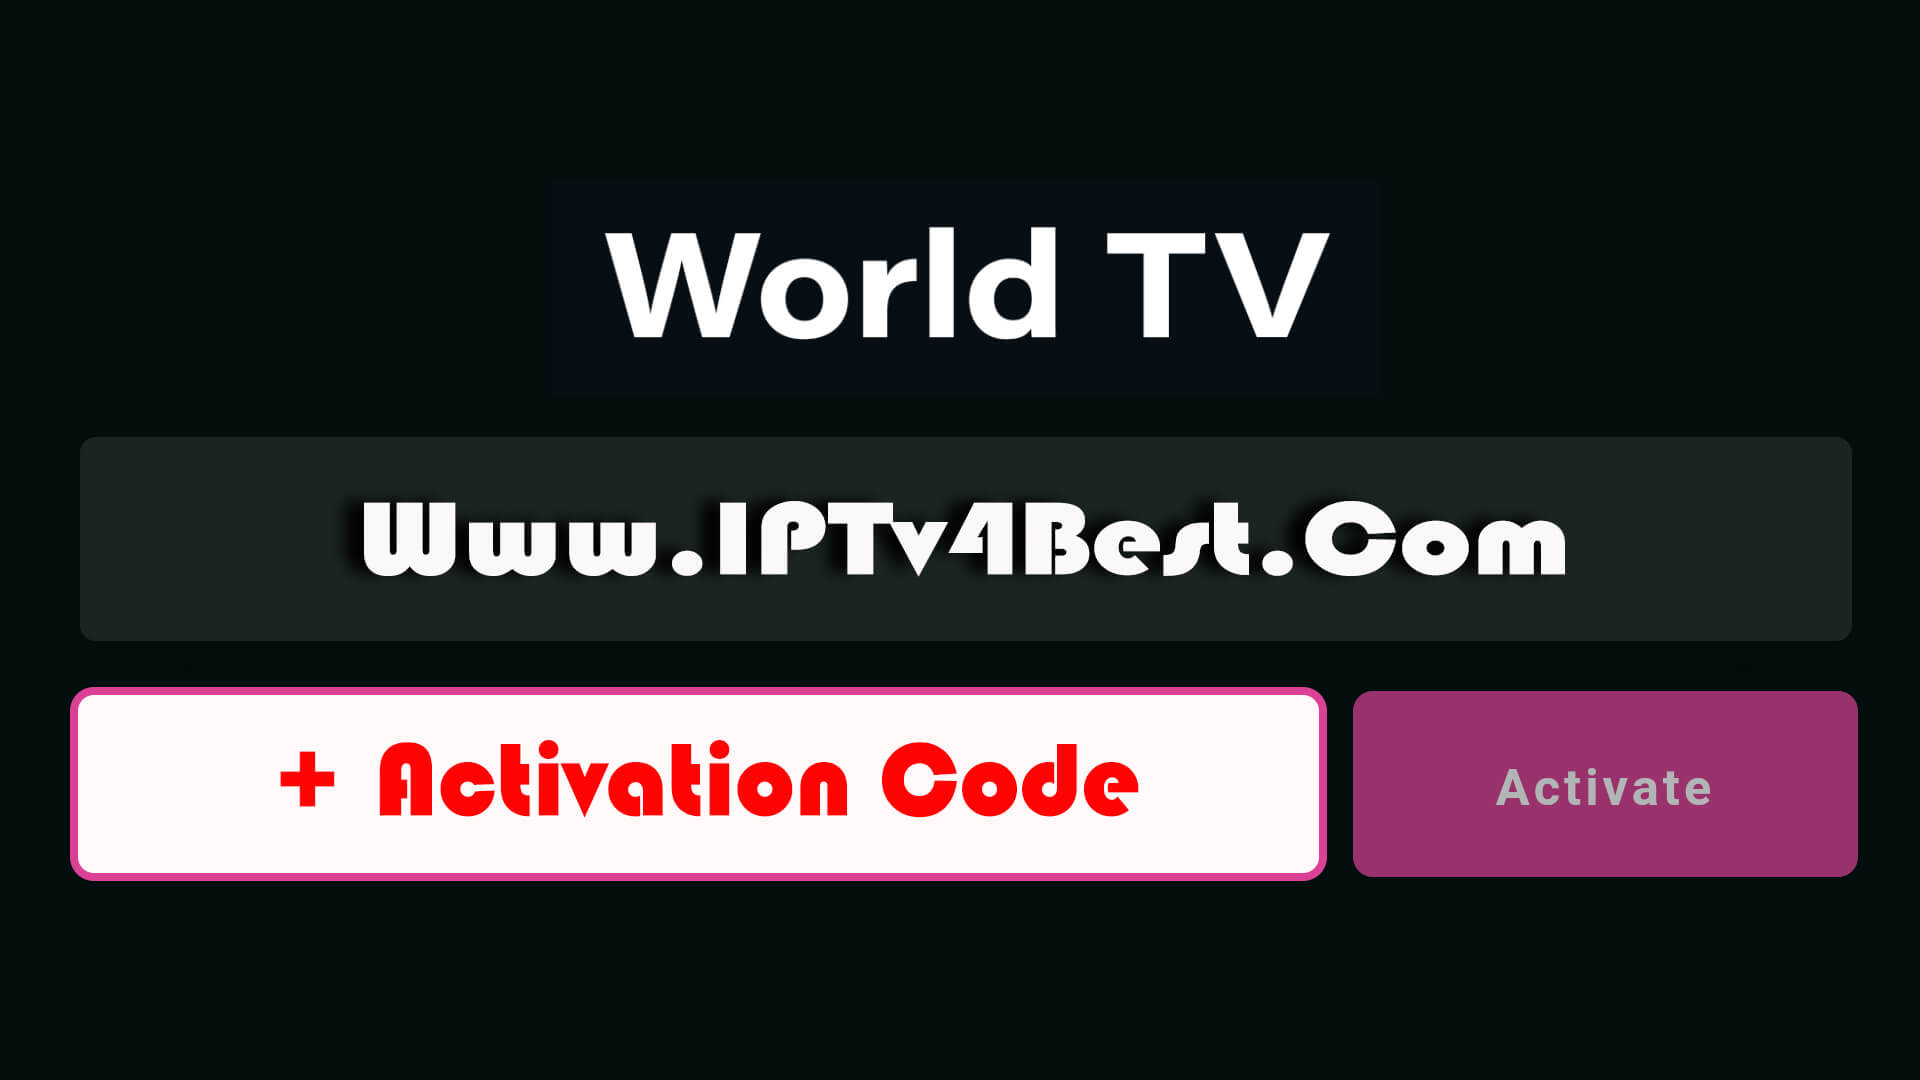 World Tv Player APK Zaltv Pro Activation Code By IPTV4BEST.COM